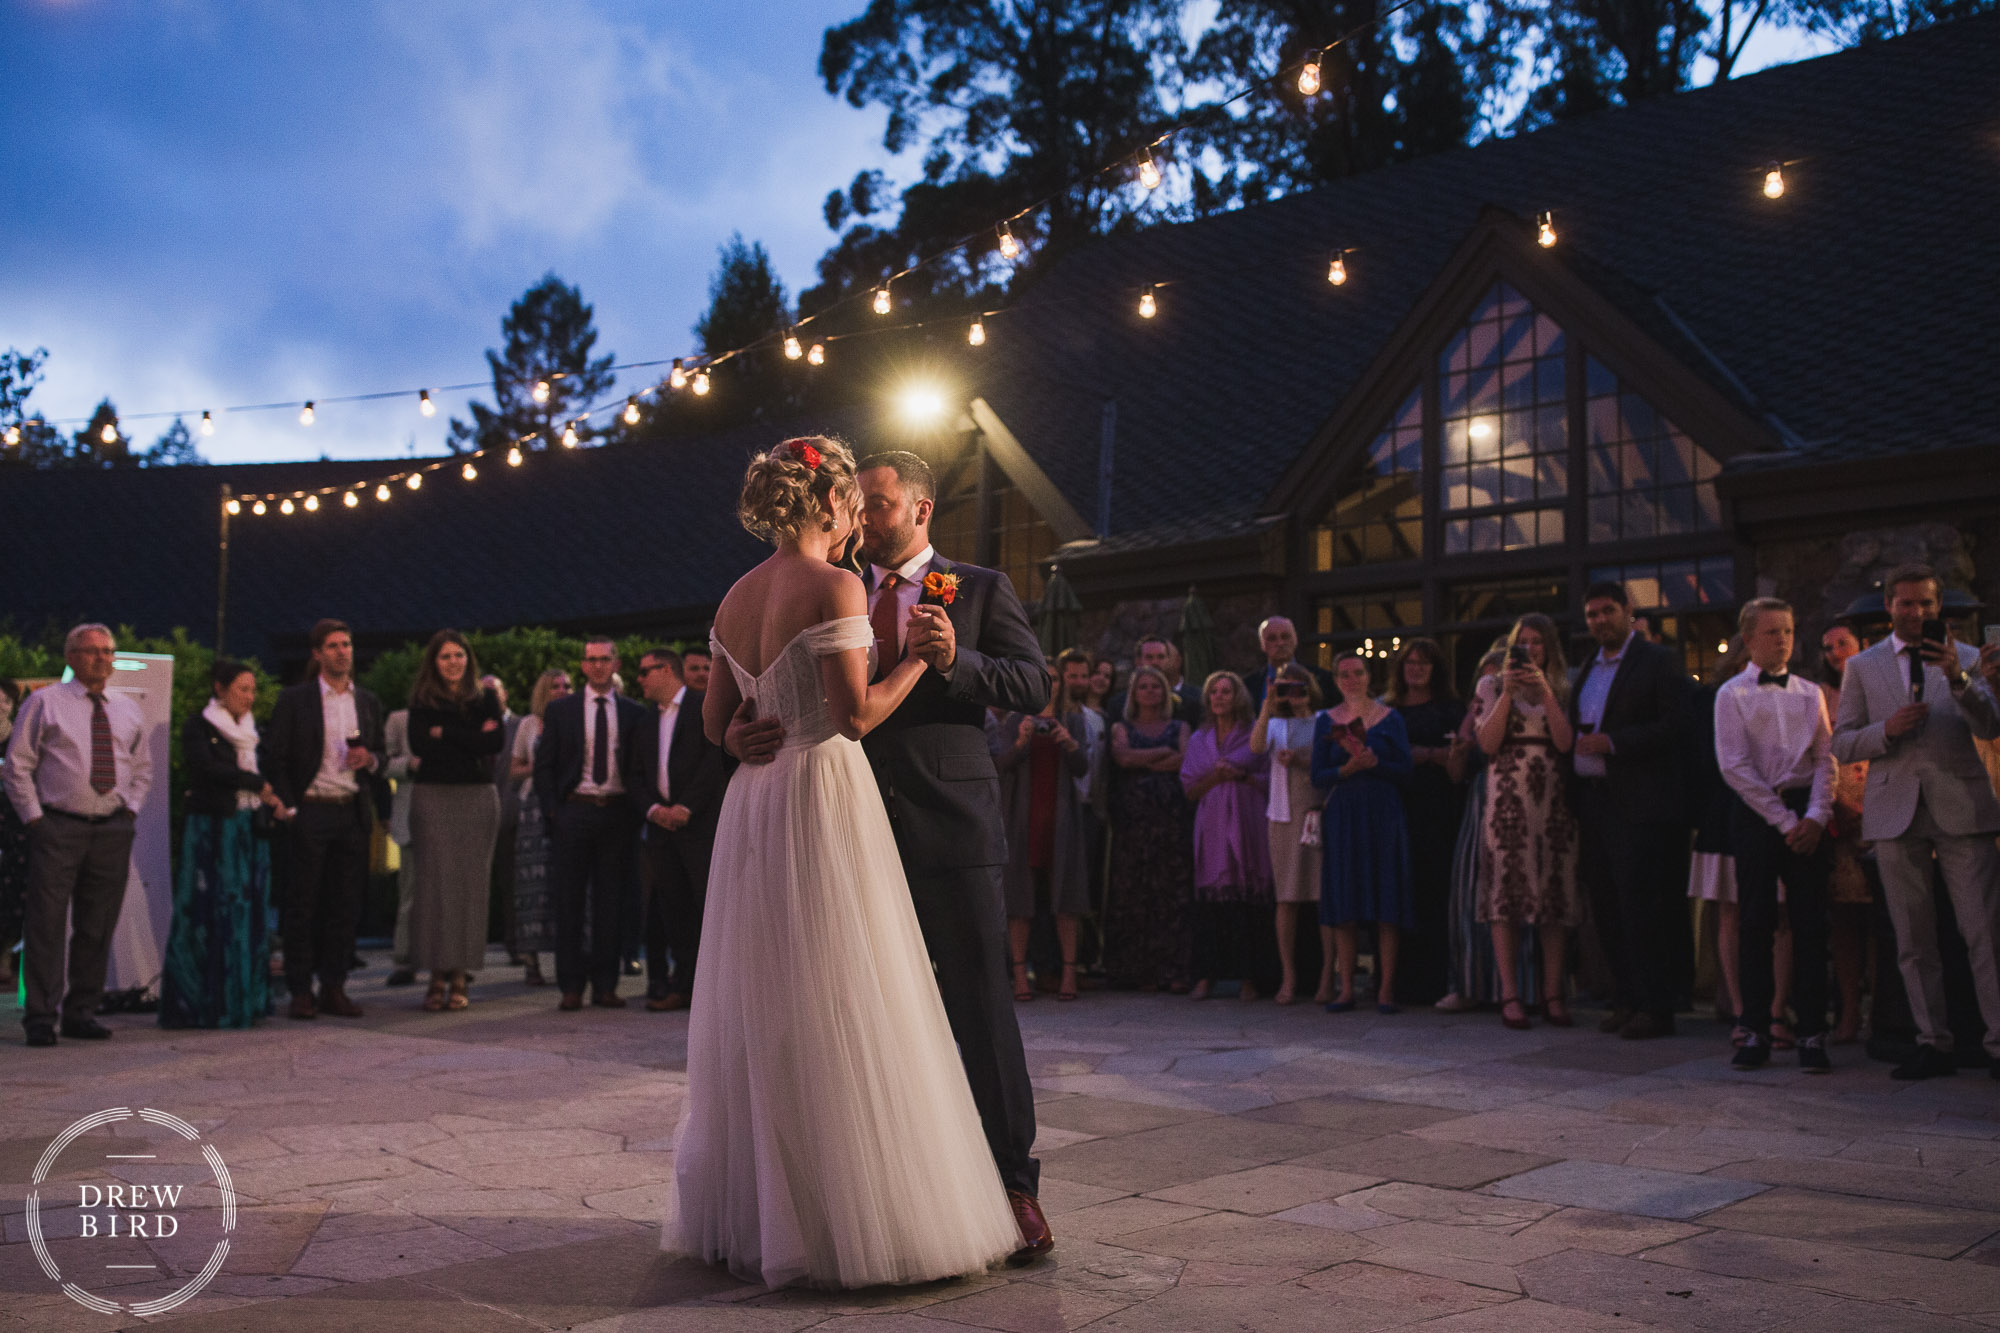 Bride and groom first dance photo on the outdoor patio at sunset for Brazilian Room wedding in Tilden Park Berkeley California.